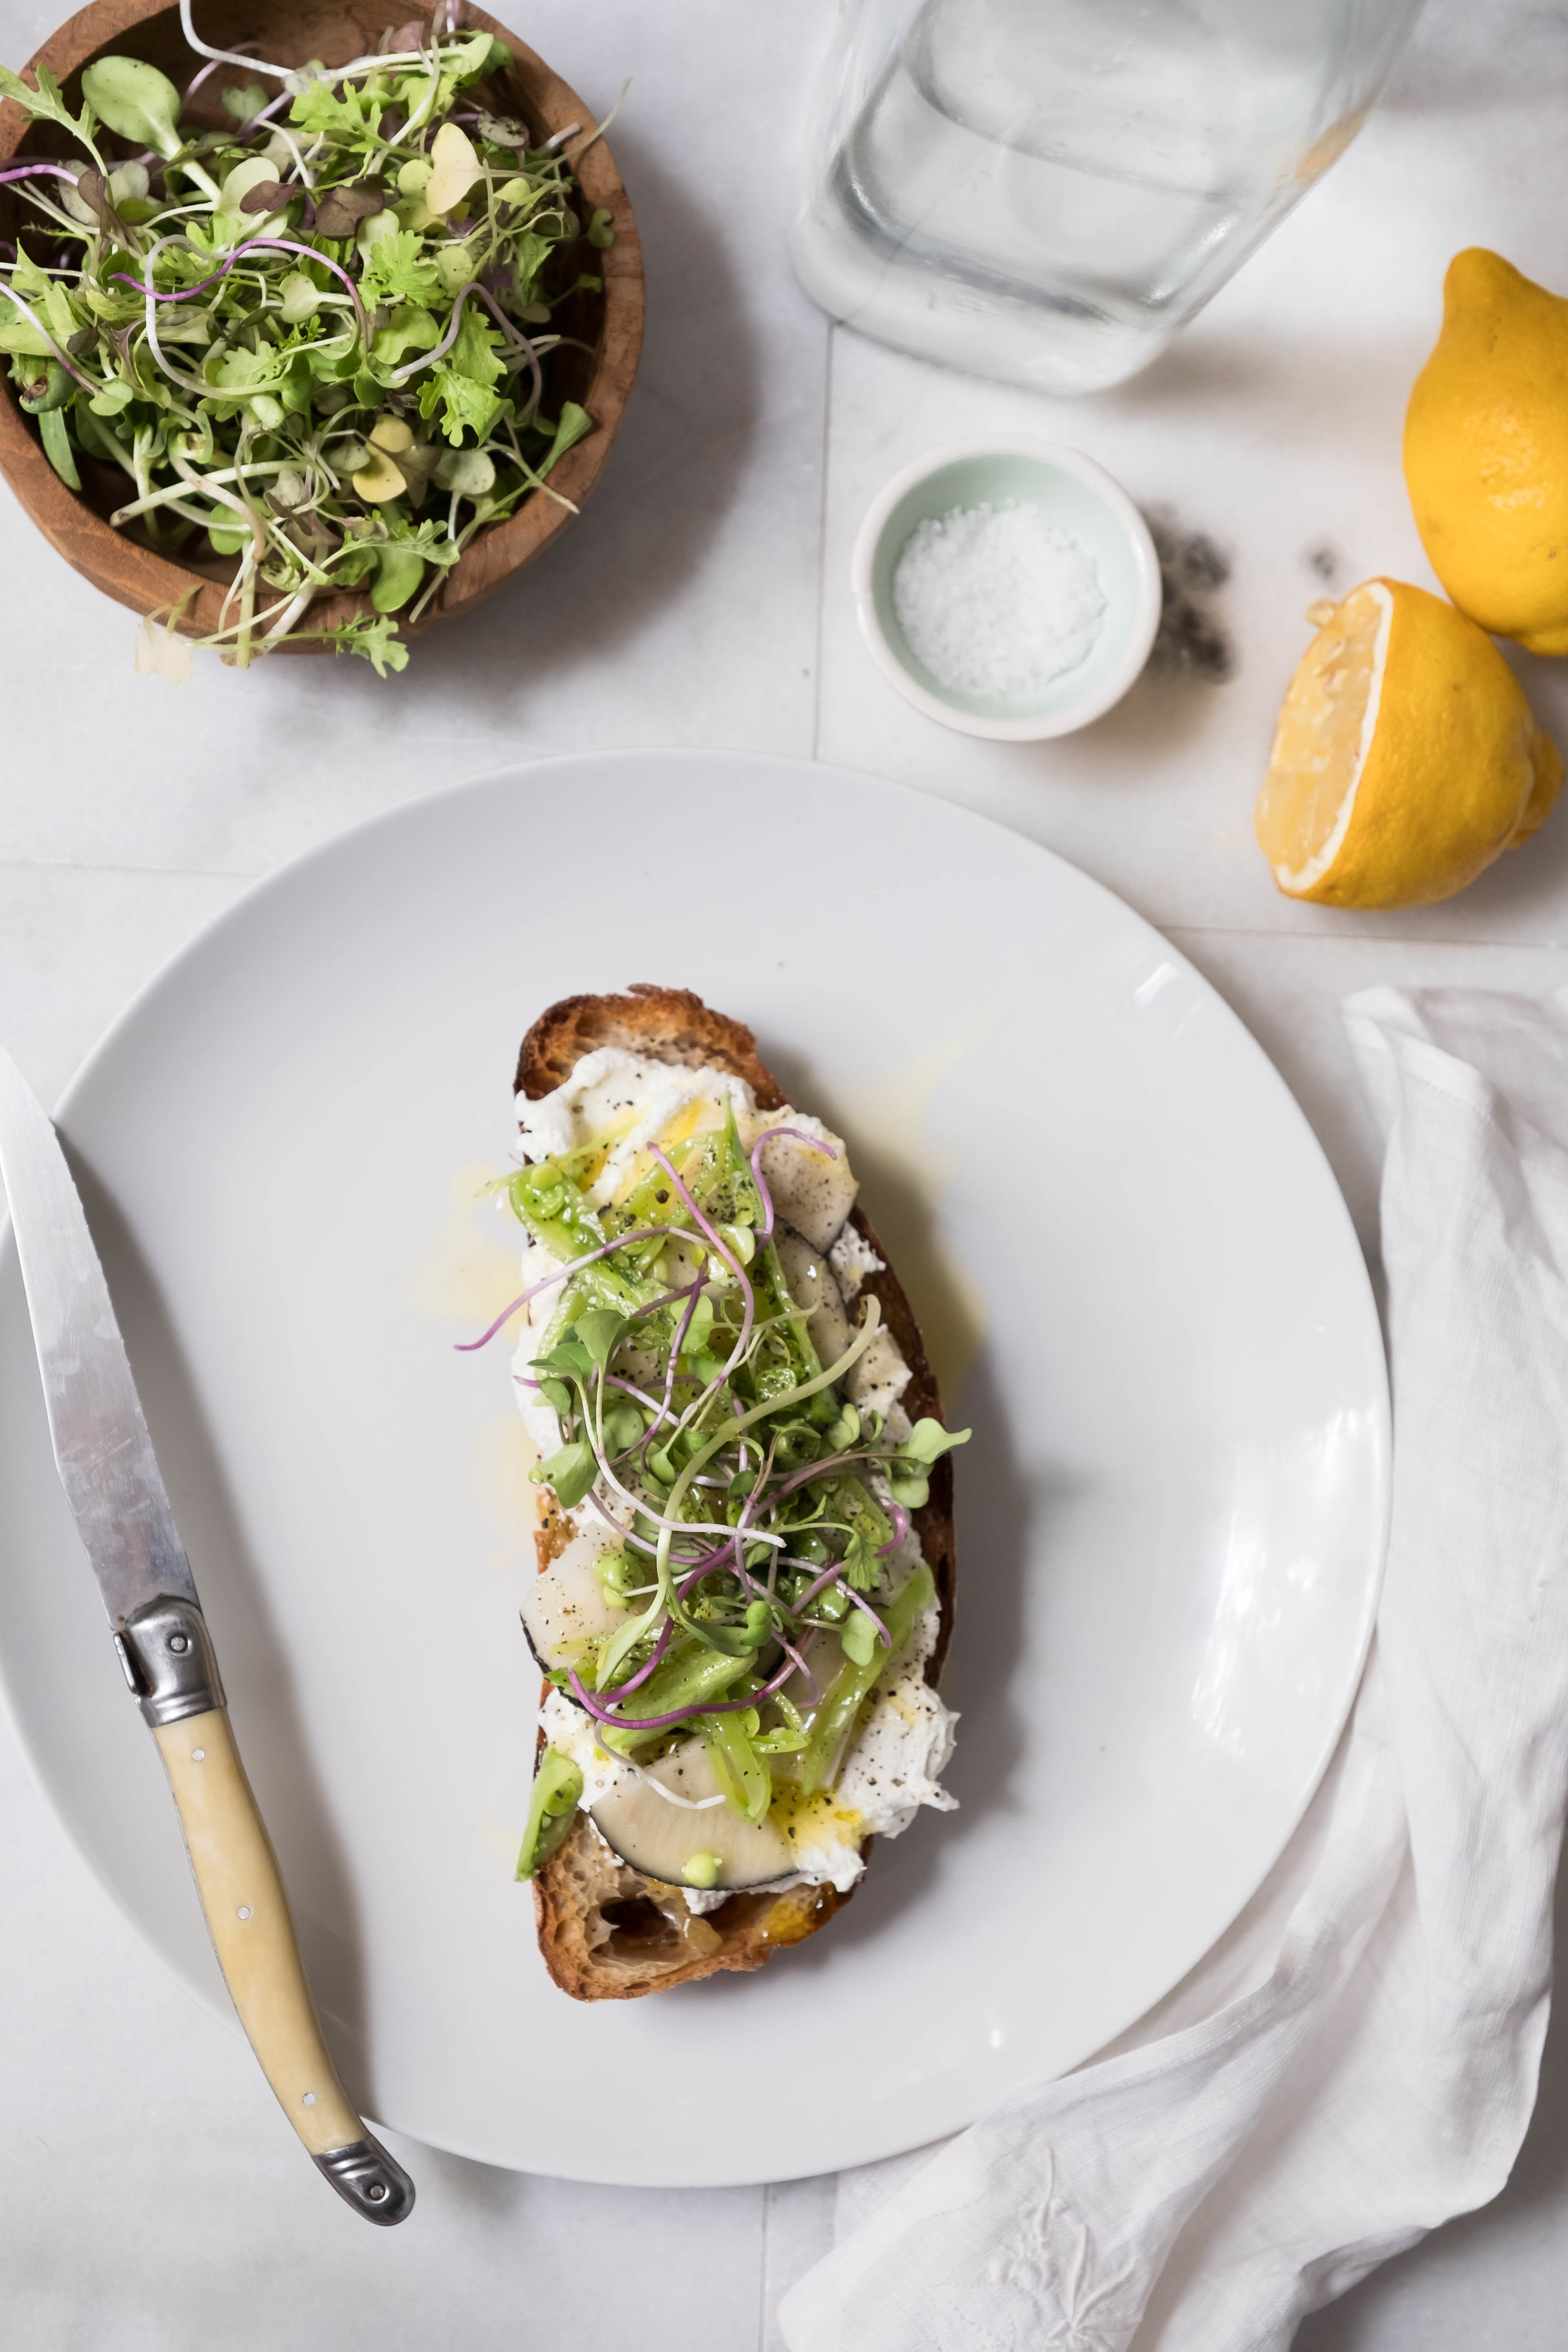 ROSE & IVY Journal Ricotta Toasts Two Ways | Sweet + Savory Springtime Crunch Ricotta Toast